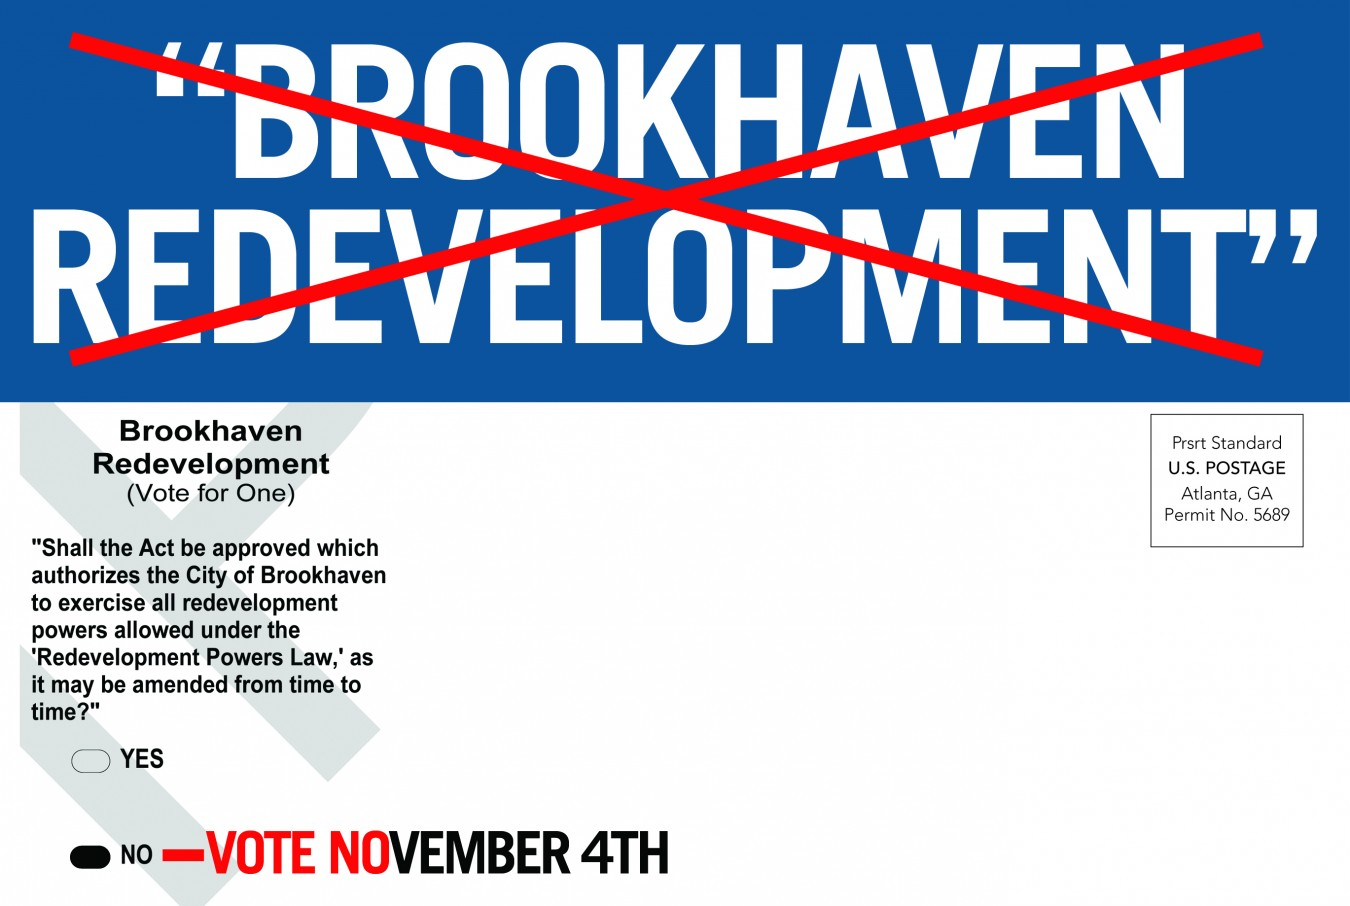 Say No To Brookhaven Redevelopment